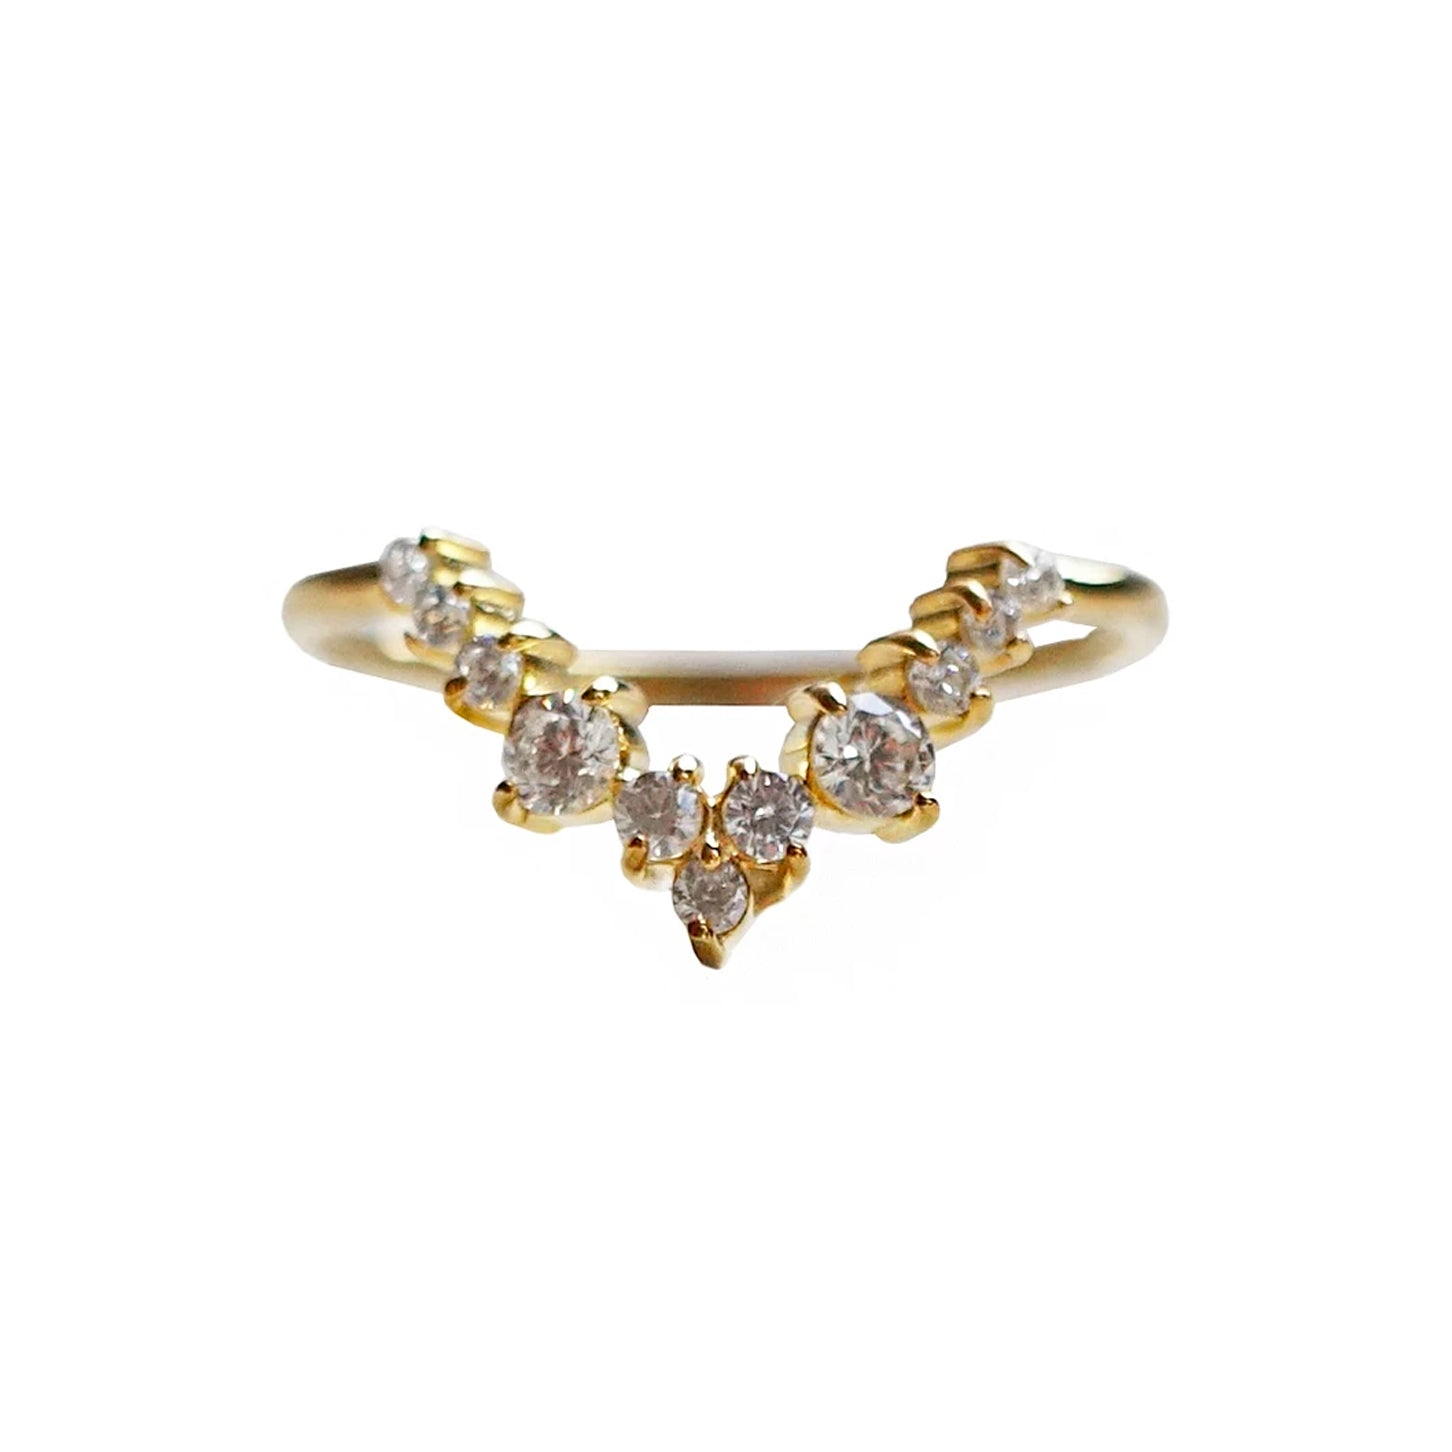 14K Goddess Diamond Ring